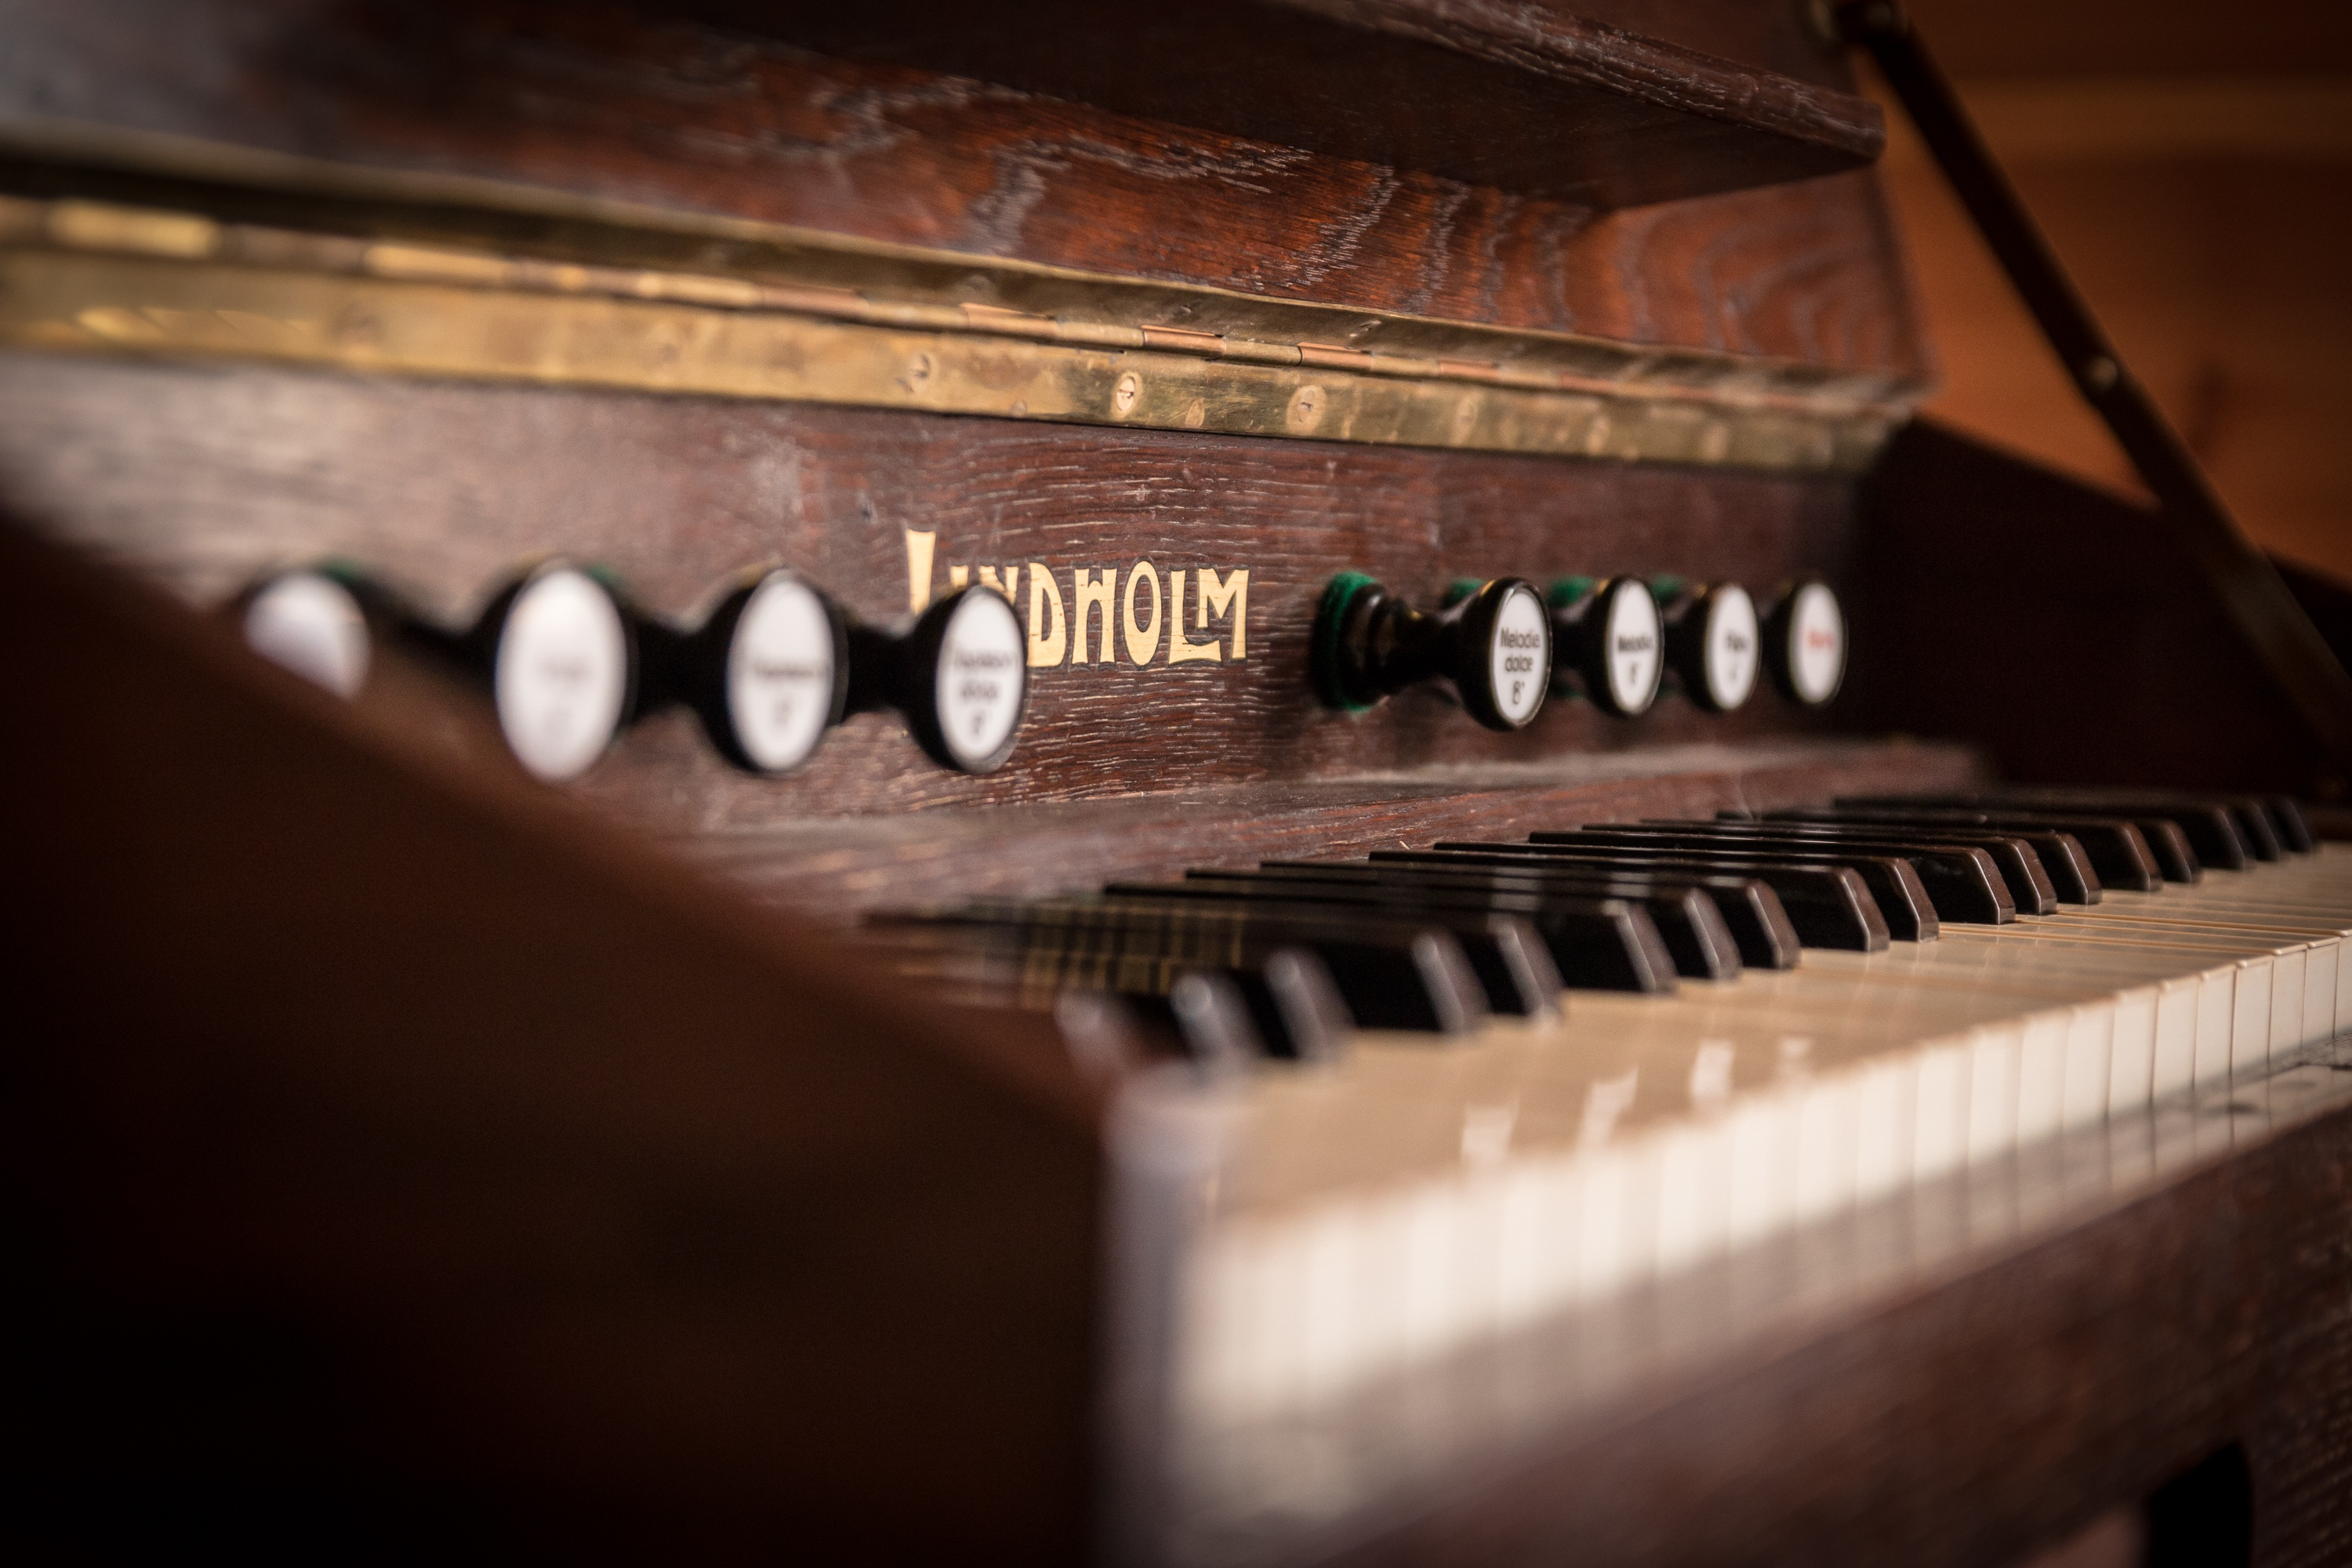 music-keyboard-technology-antique-old-piano-939279-pxhere.com